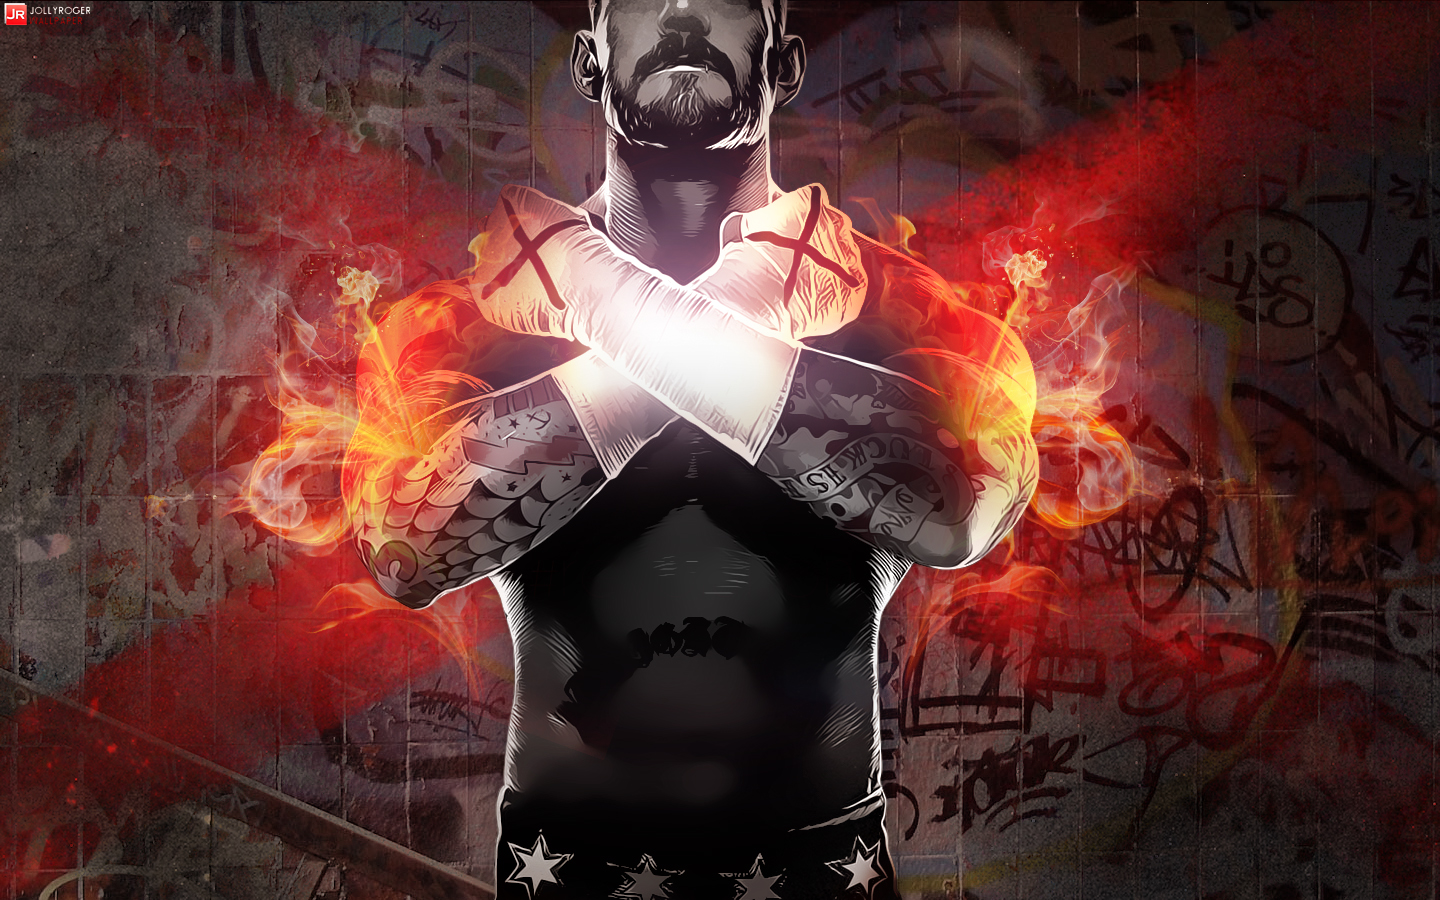 Cm Punk WWE 2012 Champion Wallpapers Its All About Wallpapers 1440x900